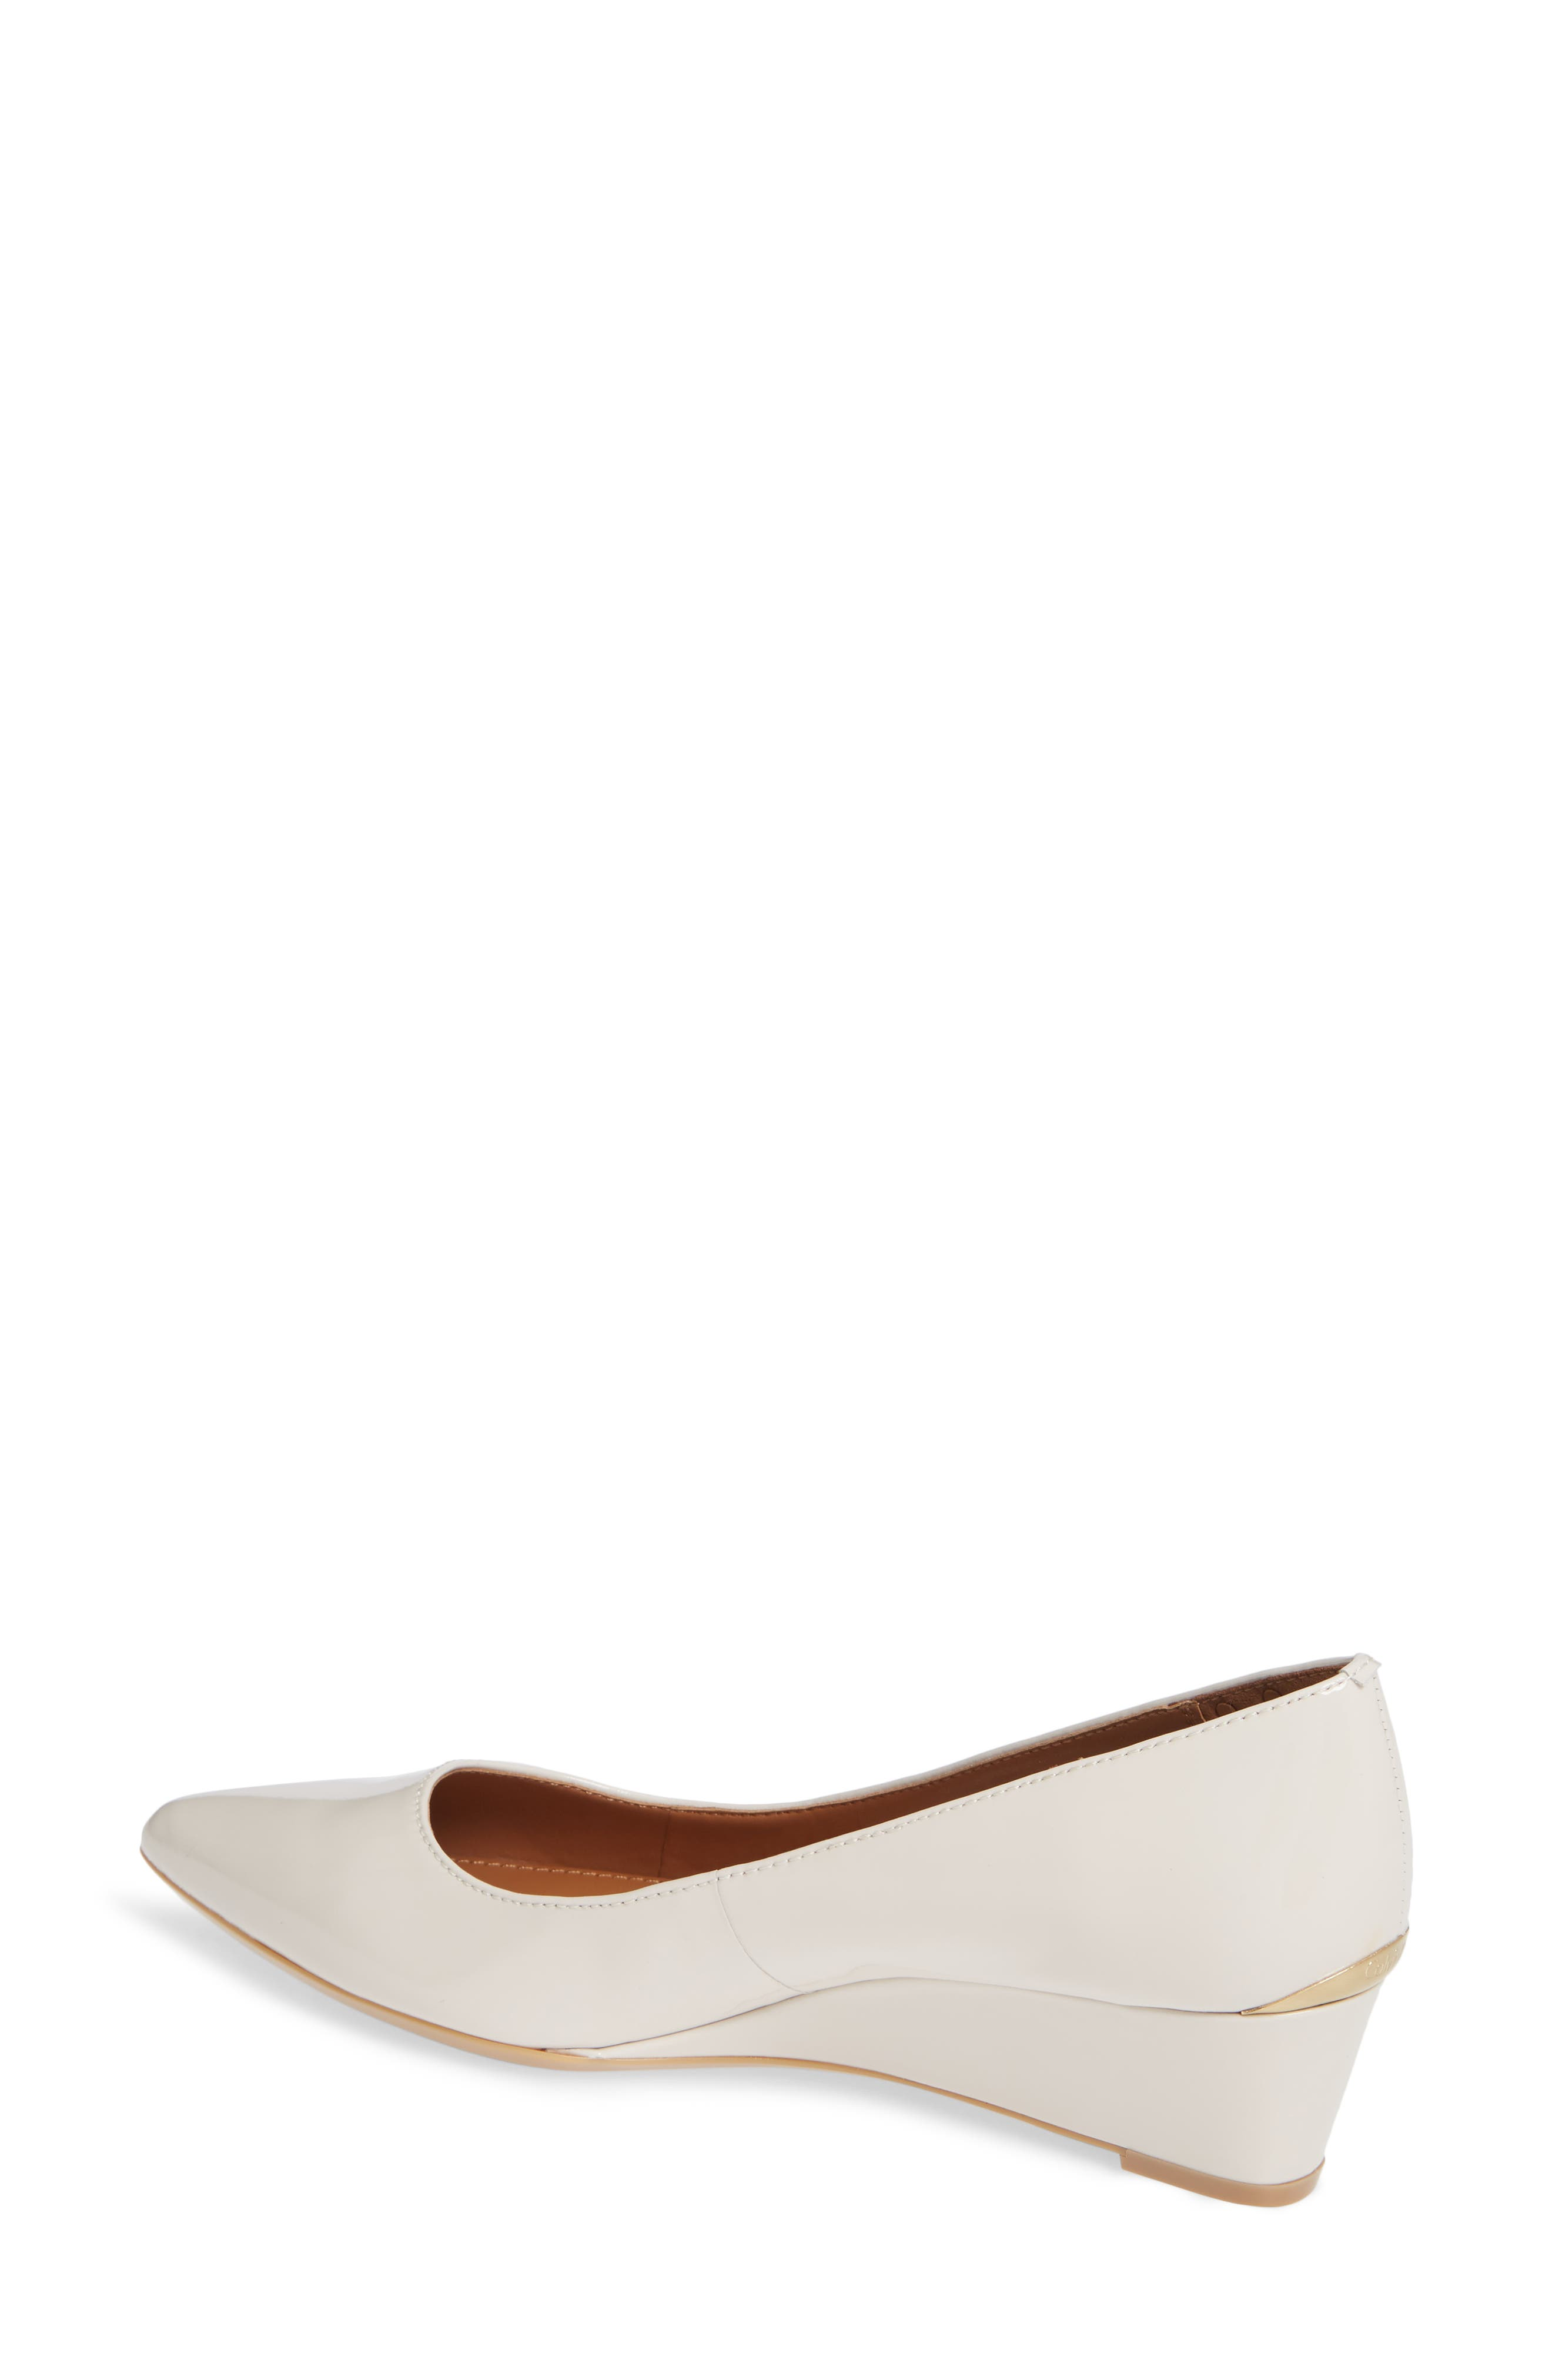 'Germina' Pointy Toe Wedge,                             Alternate thumbnail 2, color,                             SOFT WHITE PATENT